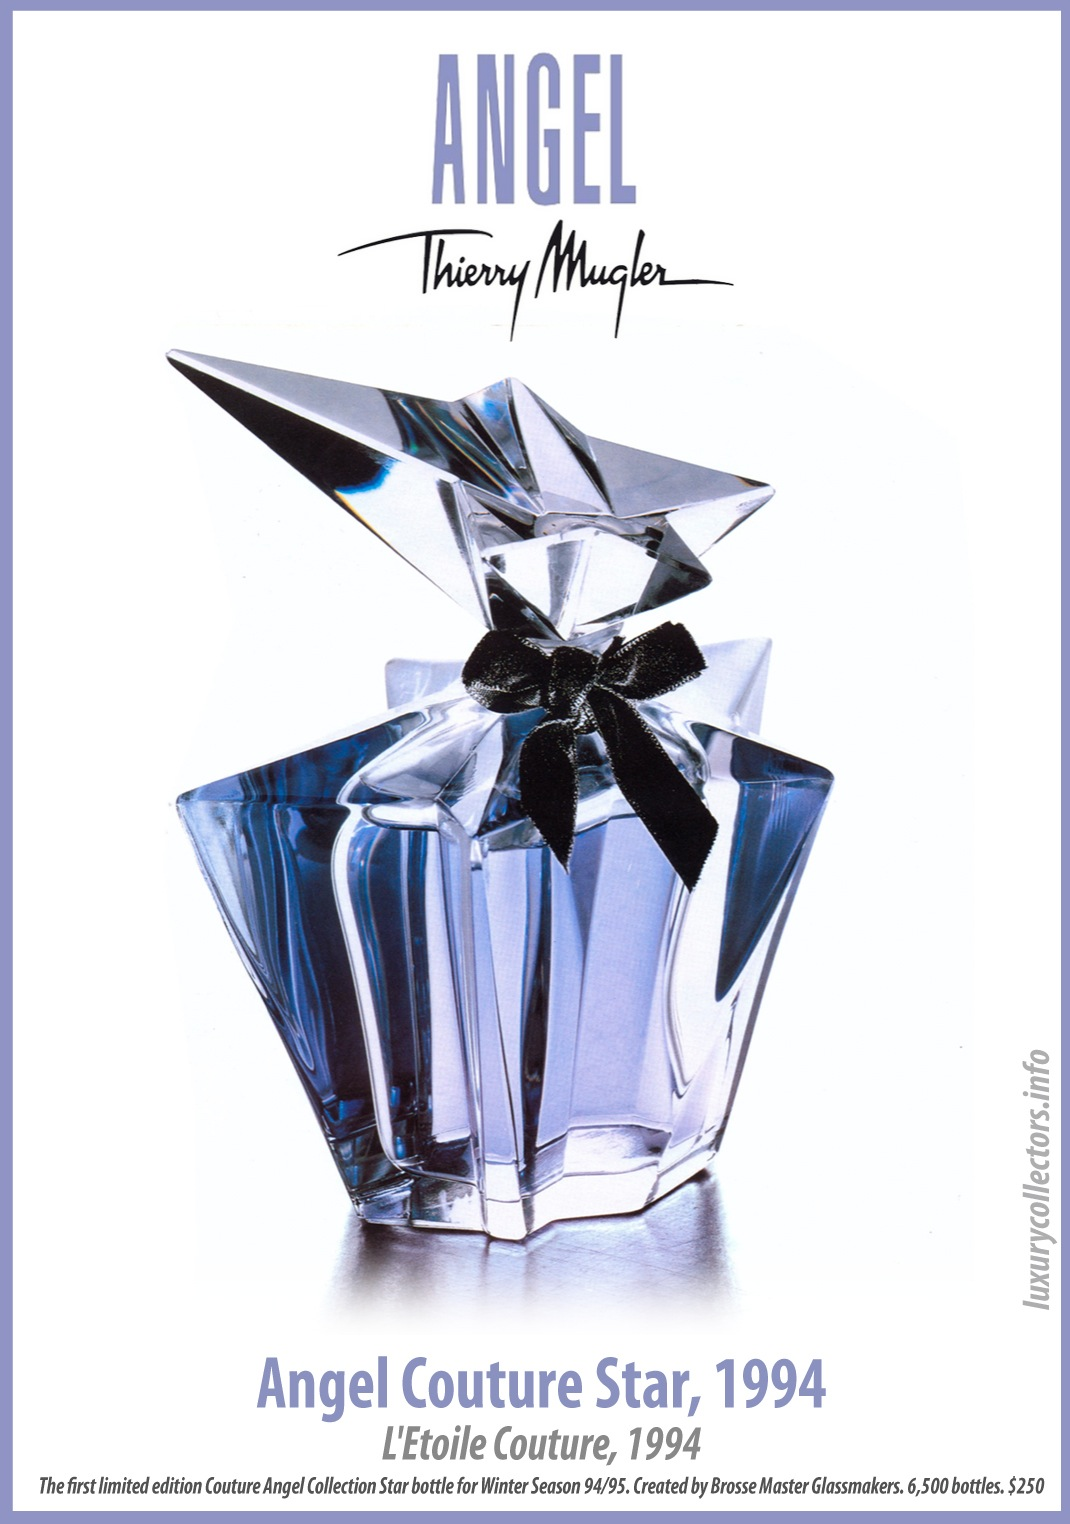 Thierry Mugler's first limited edition numbered Couture Star Perfume Bottle